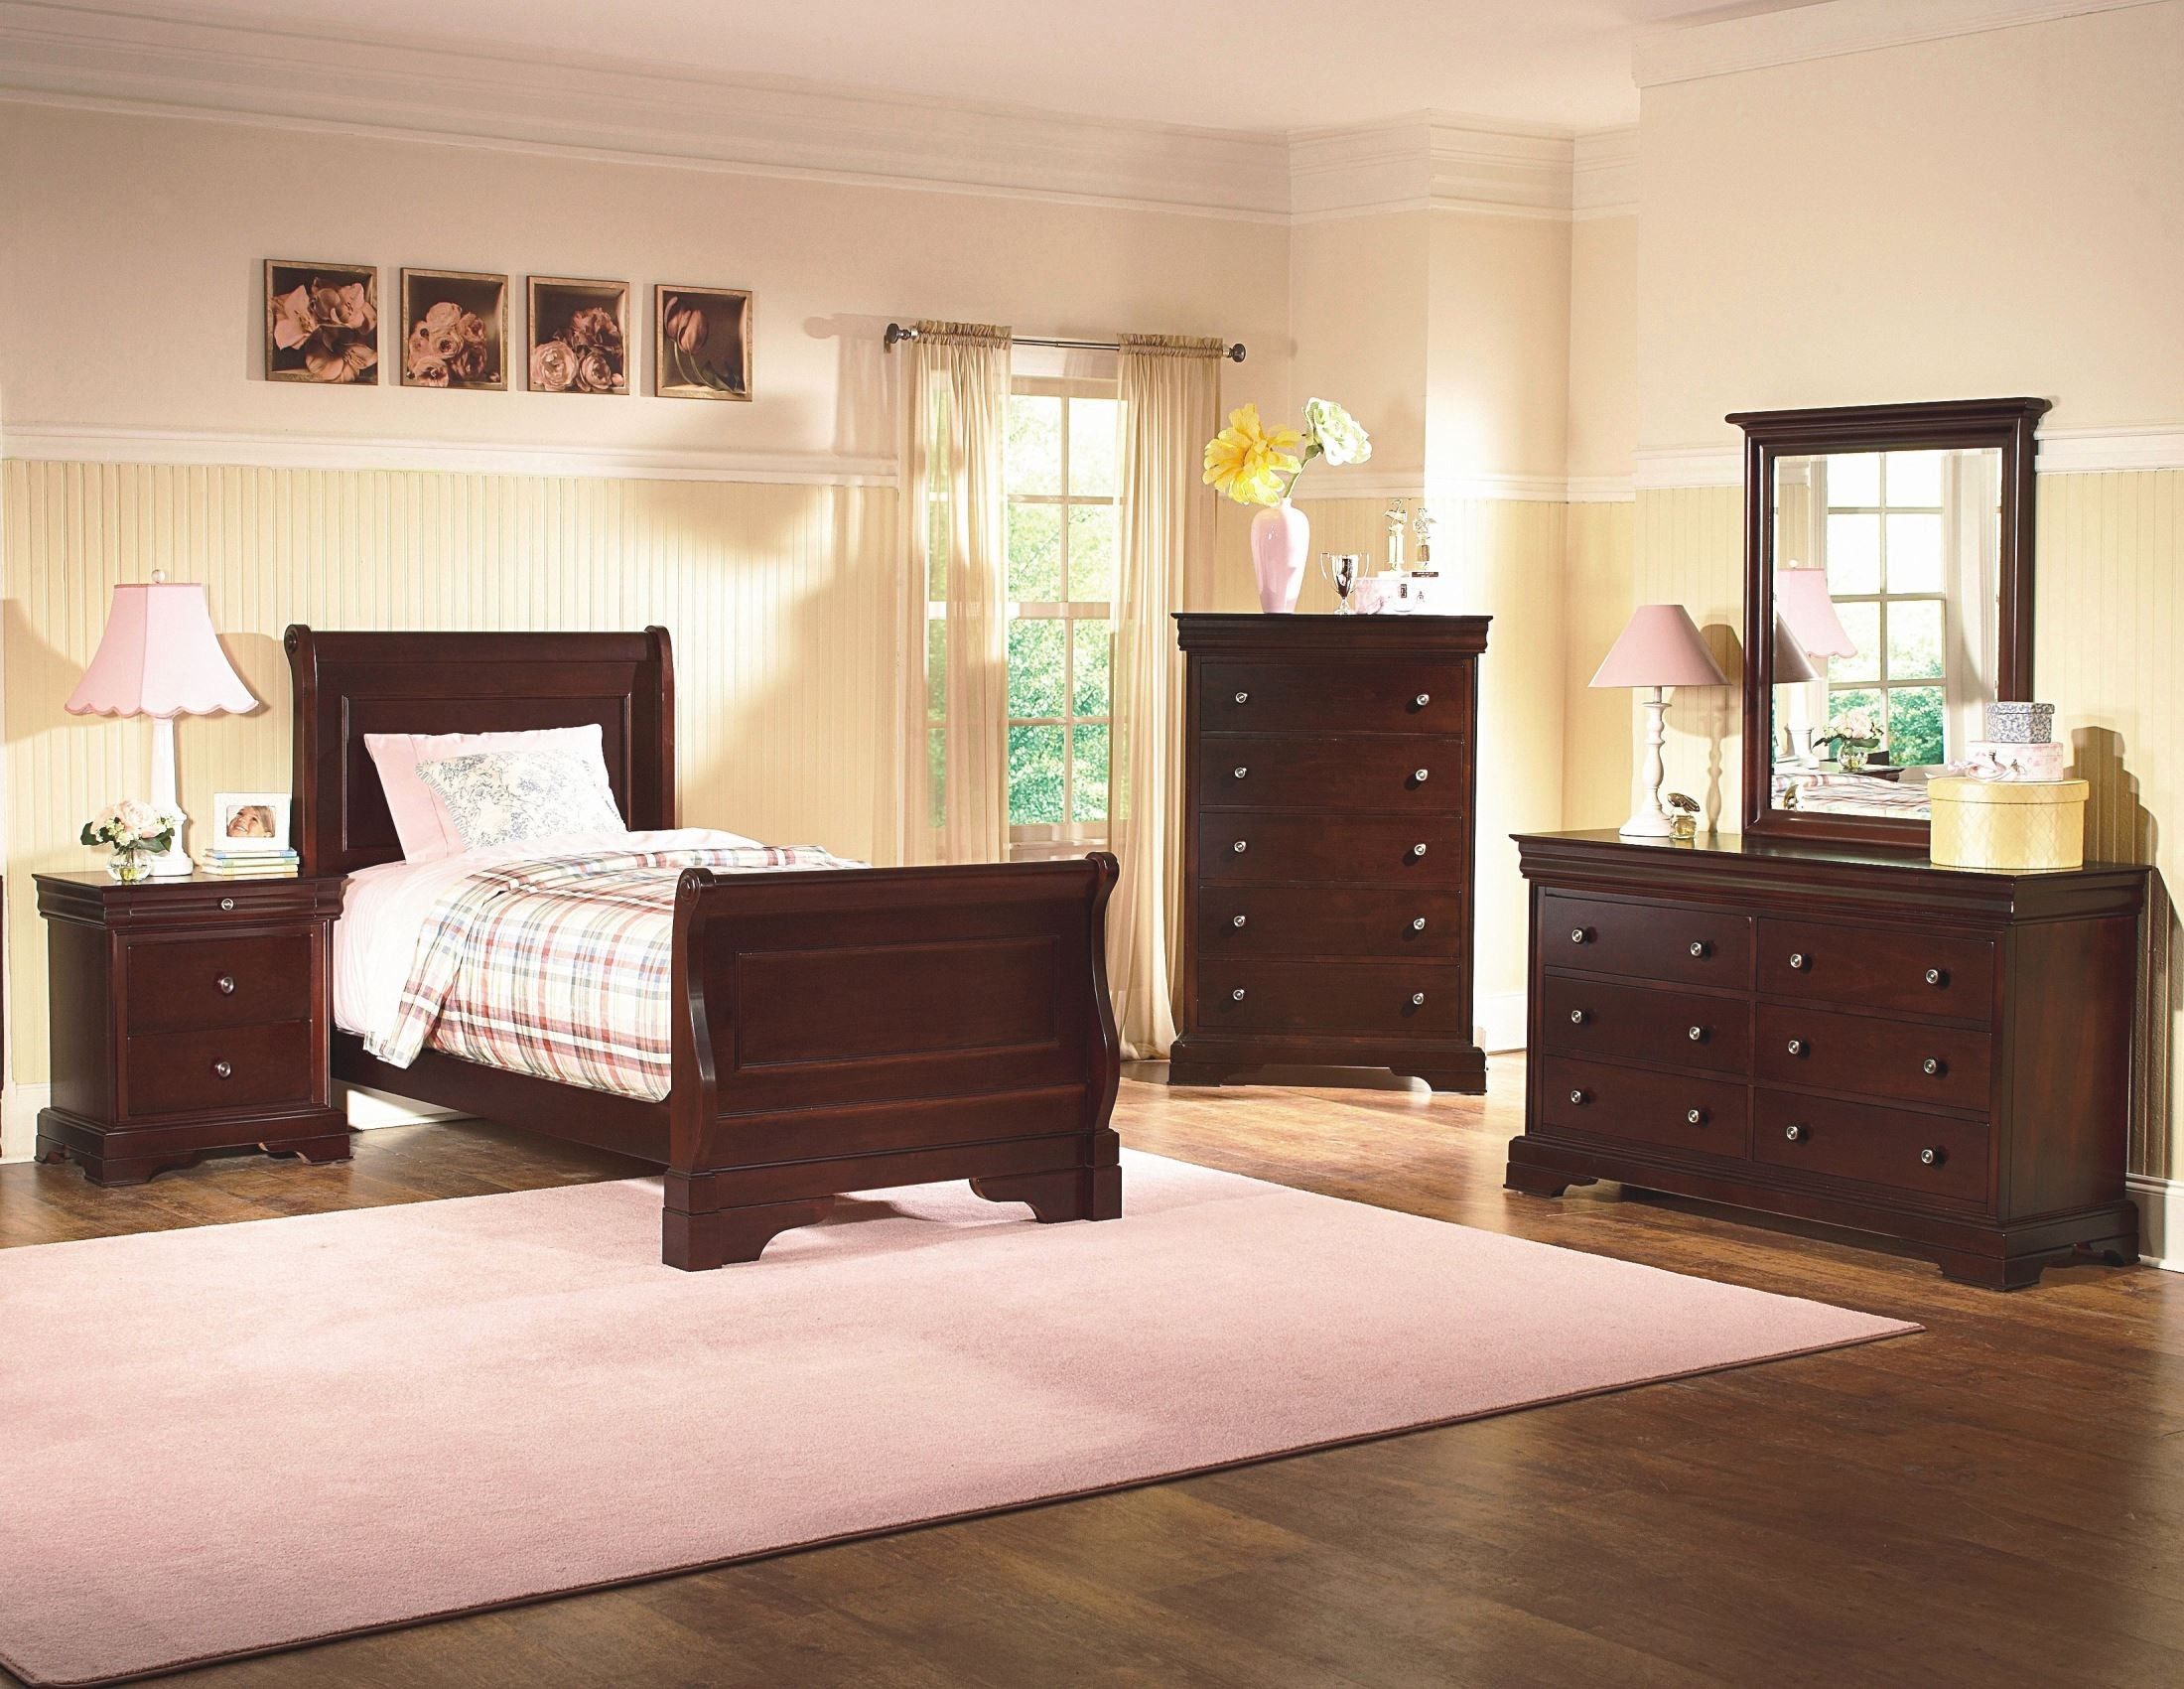 Versaille bordeaux youth sleigh bedroom set from new classics 1040 511 521 531 coleman furniture - Juvenile bedroom sets ...